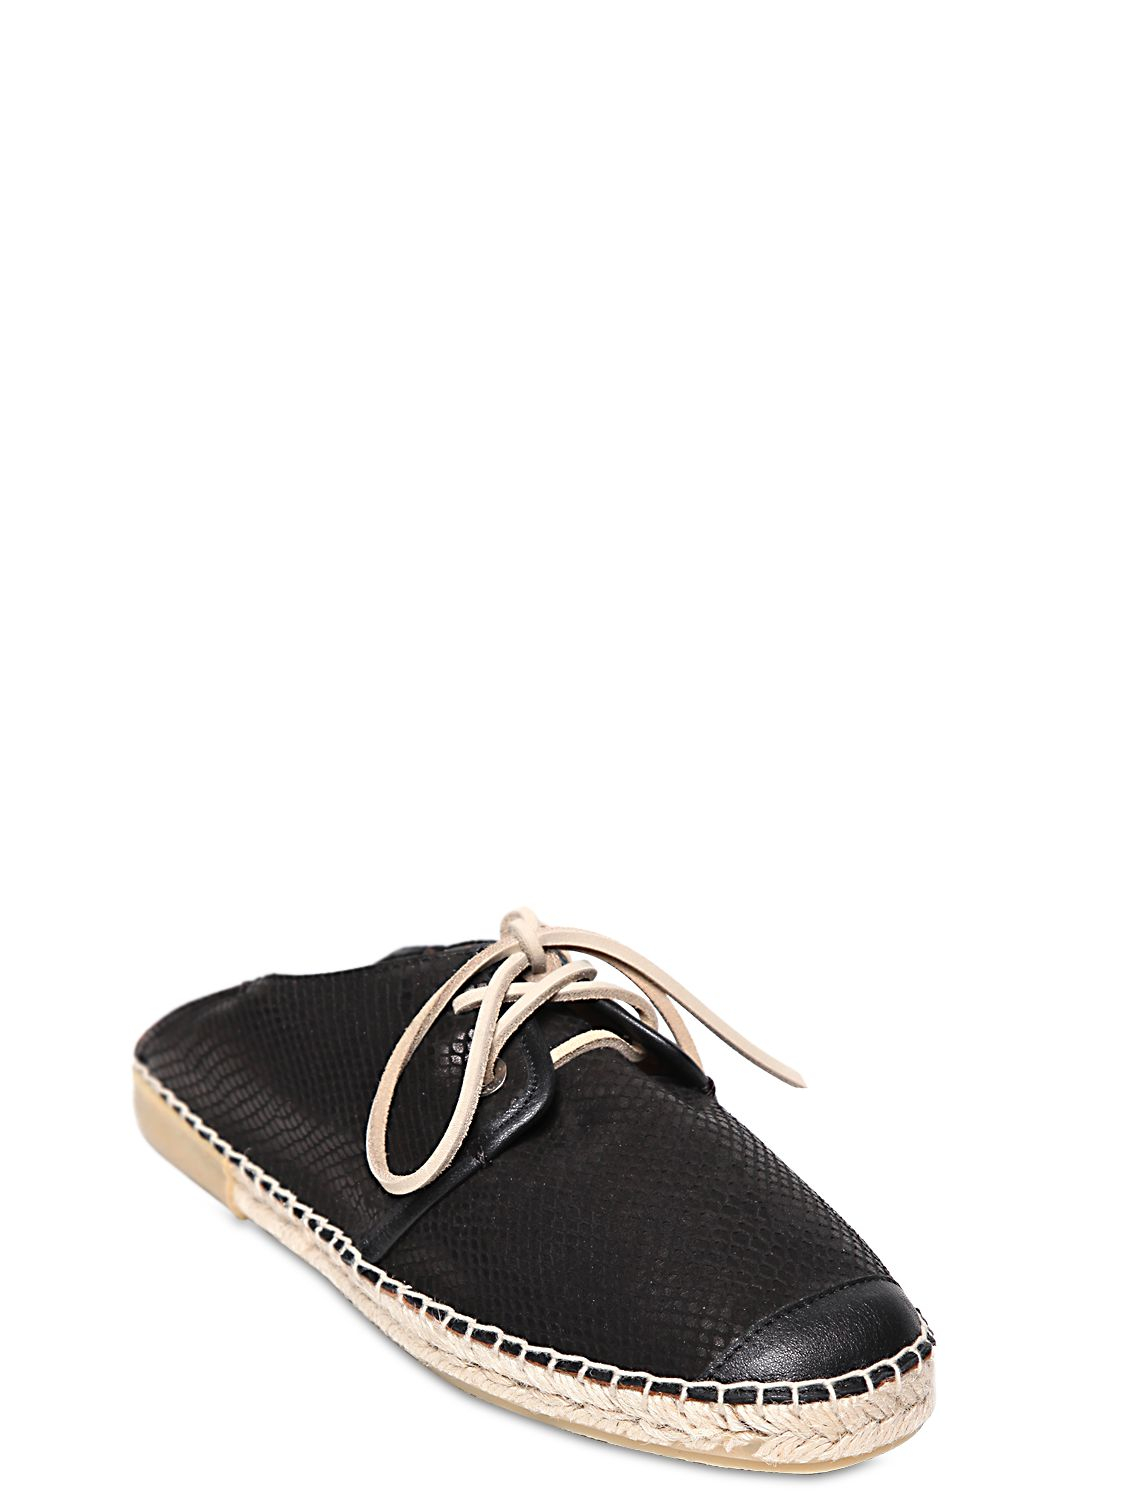 jimmy choo snake embossed leather slip on shoes in black